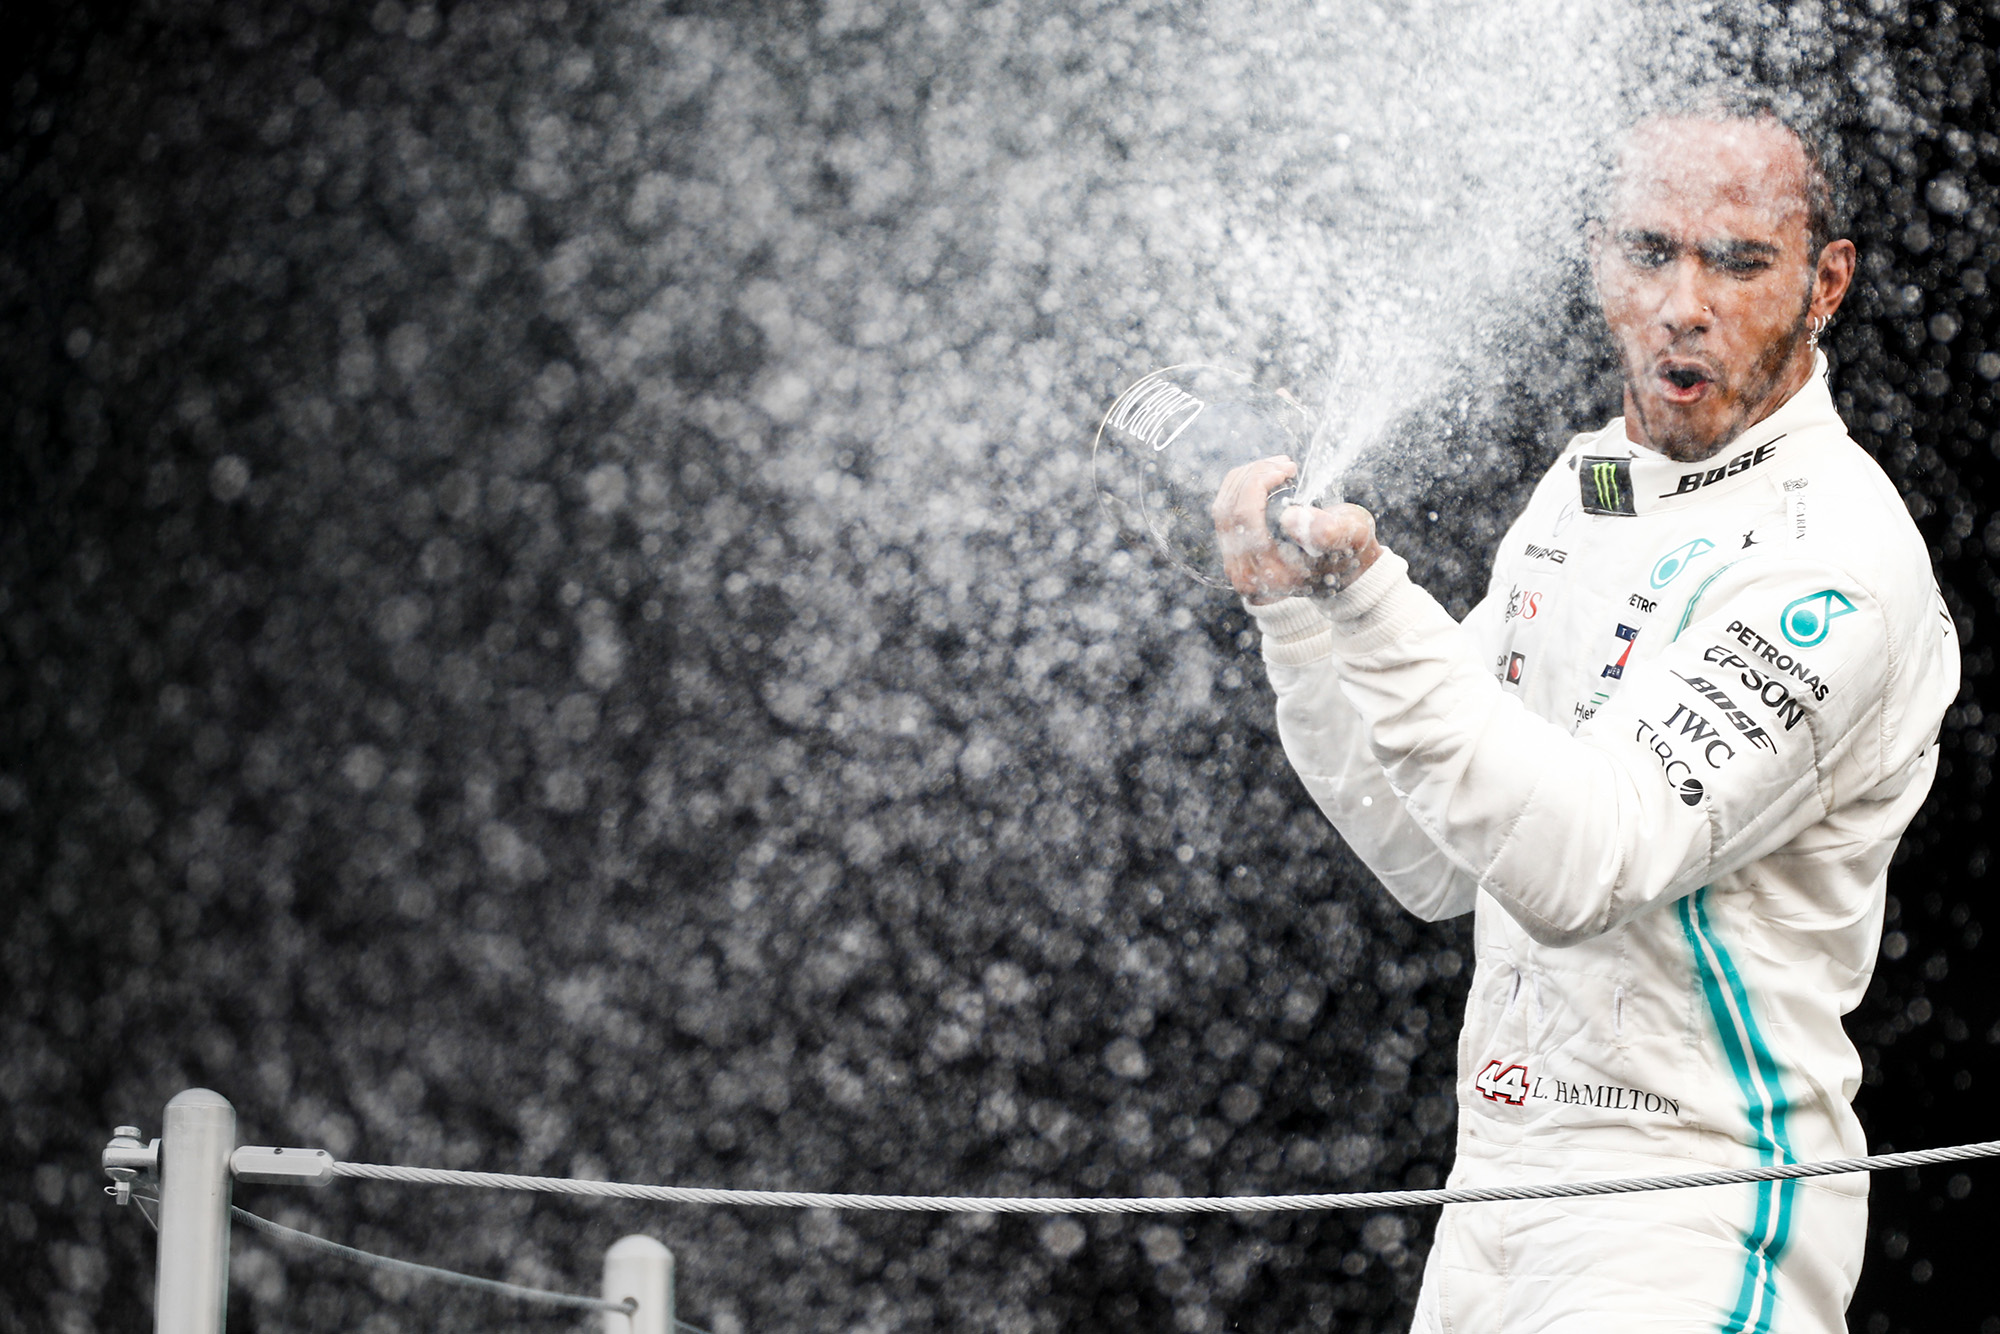 Lewis Hamilton's gift that puts the six-time F1 champion among the greats